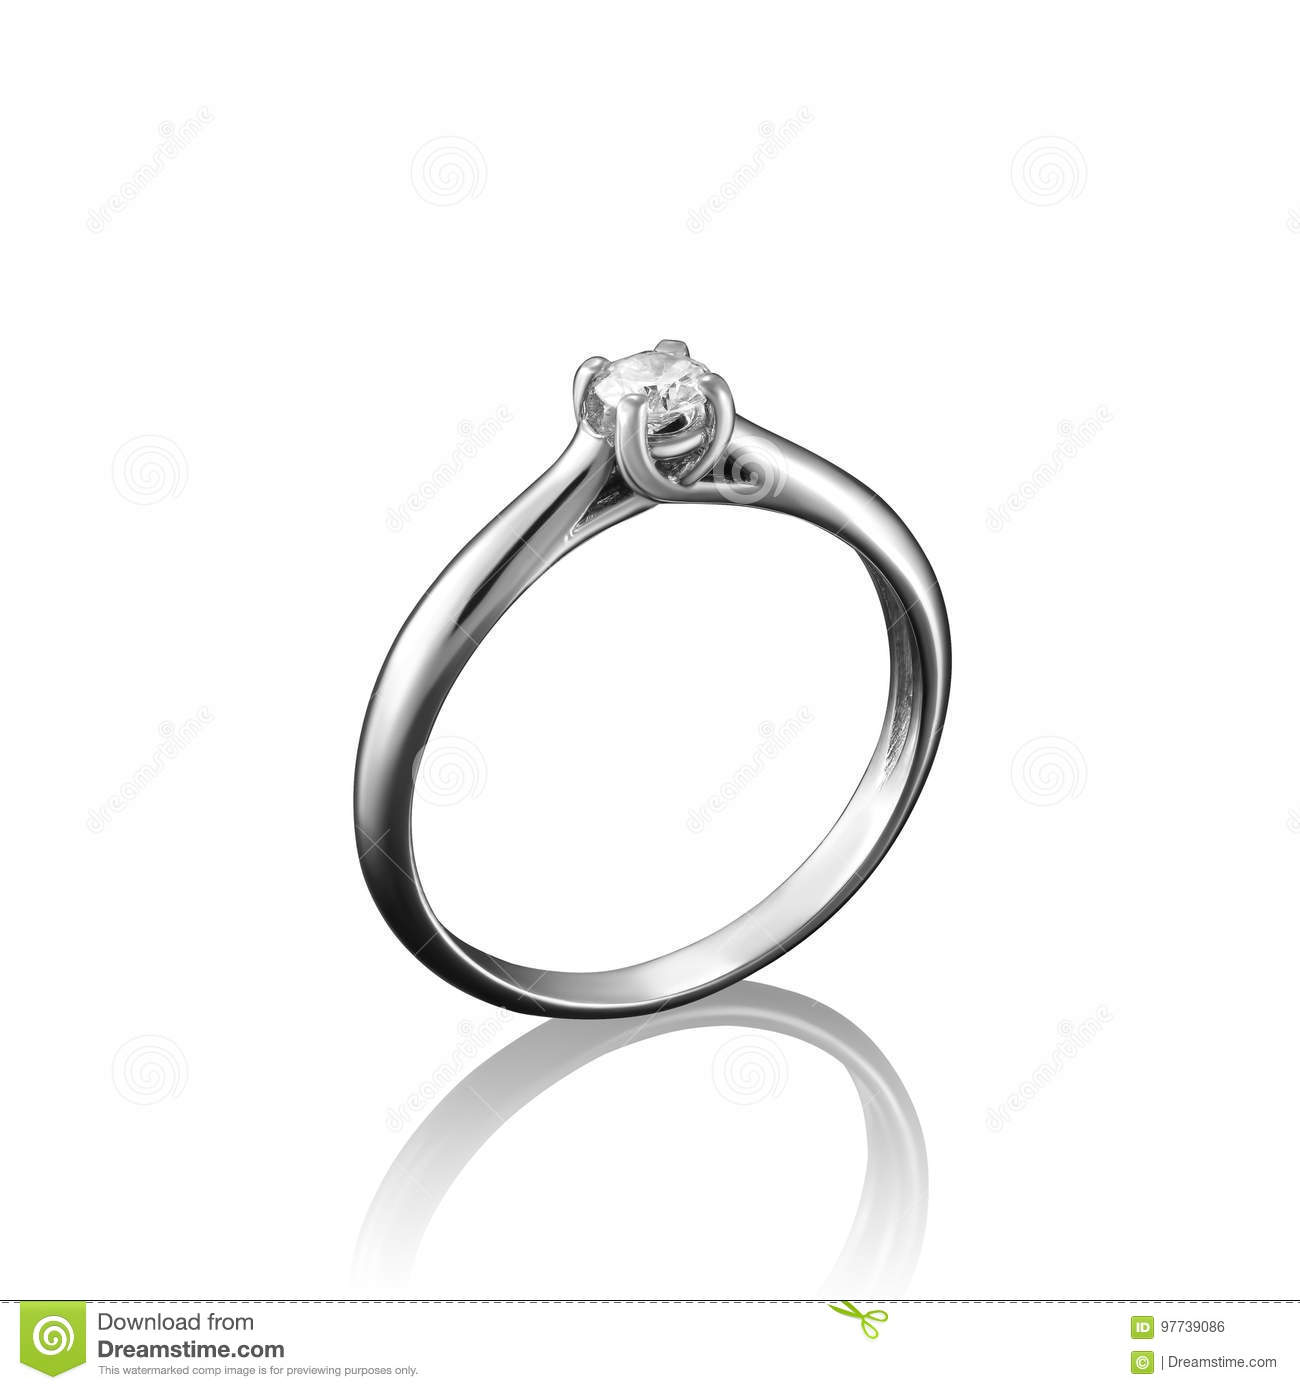 White gold diamond jewelry ring on white background with reflection